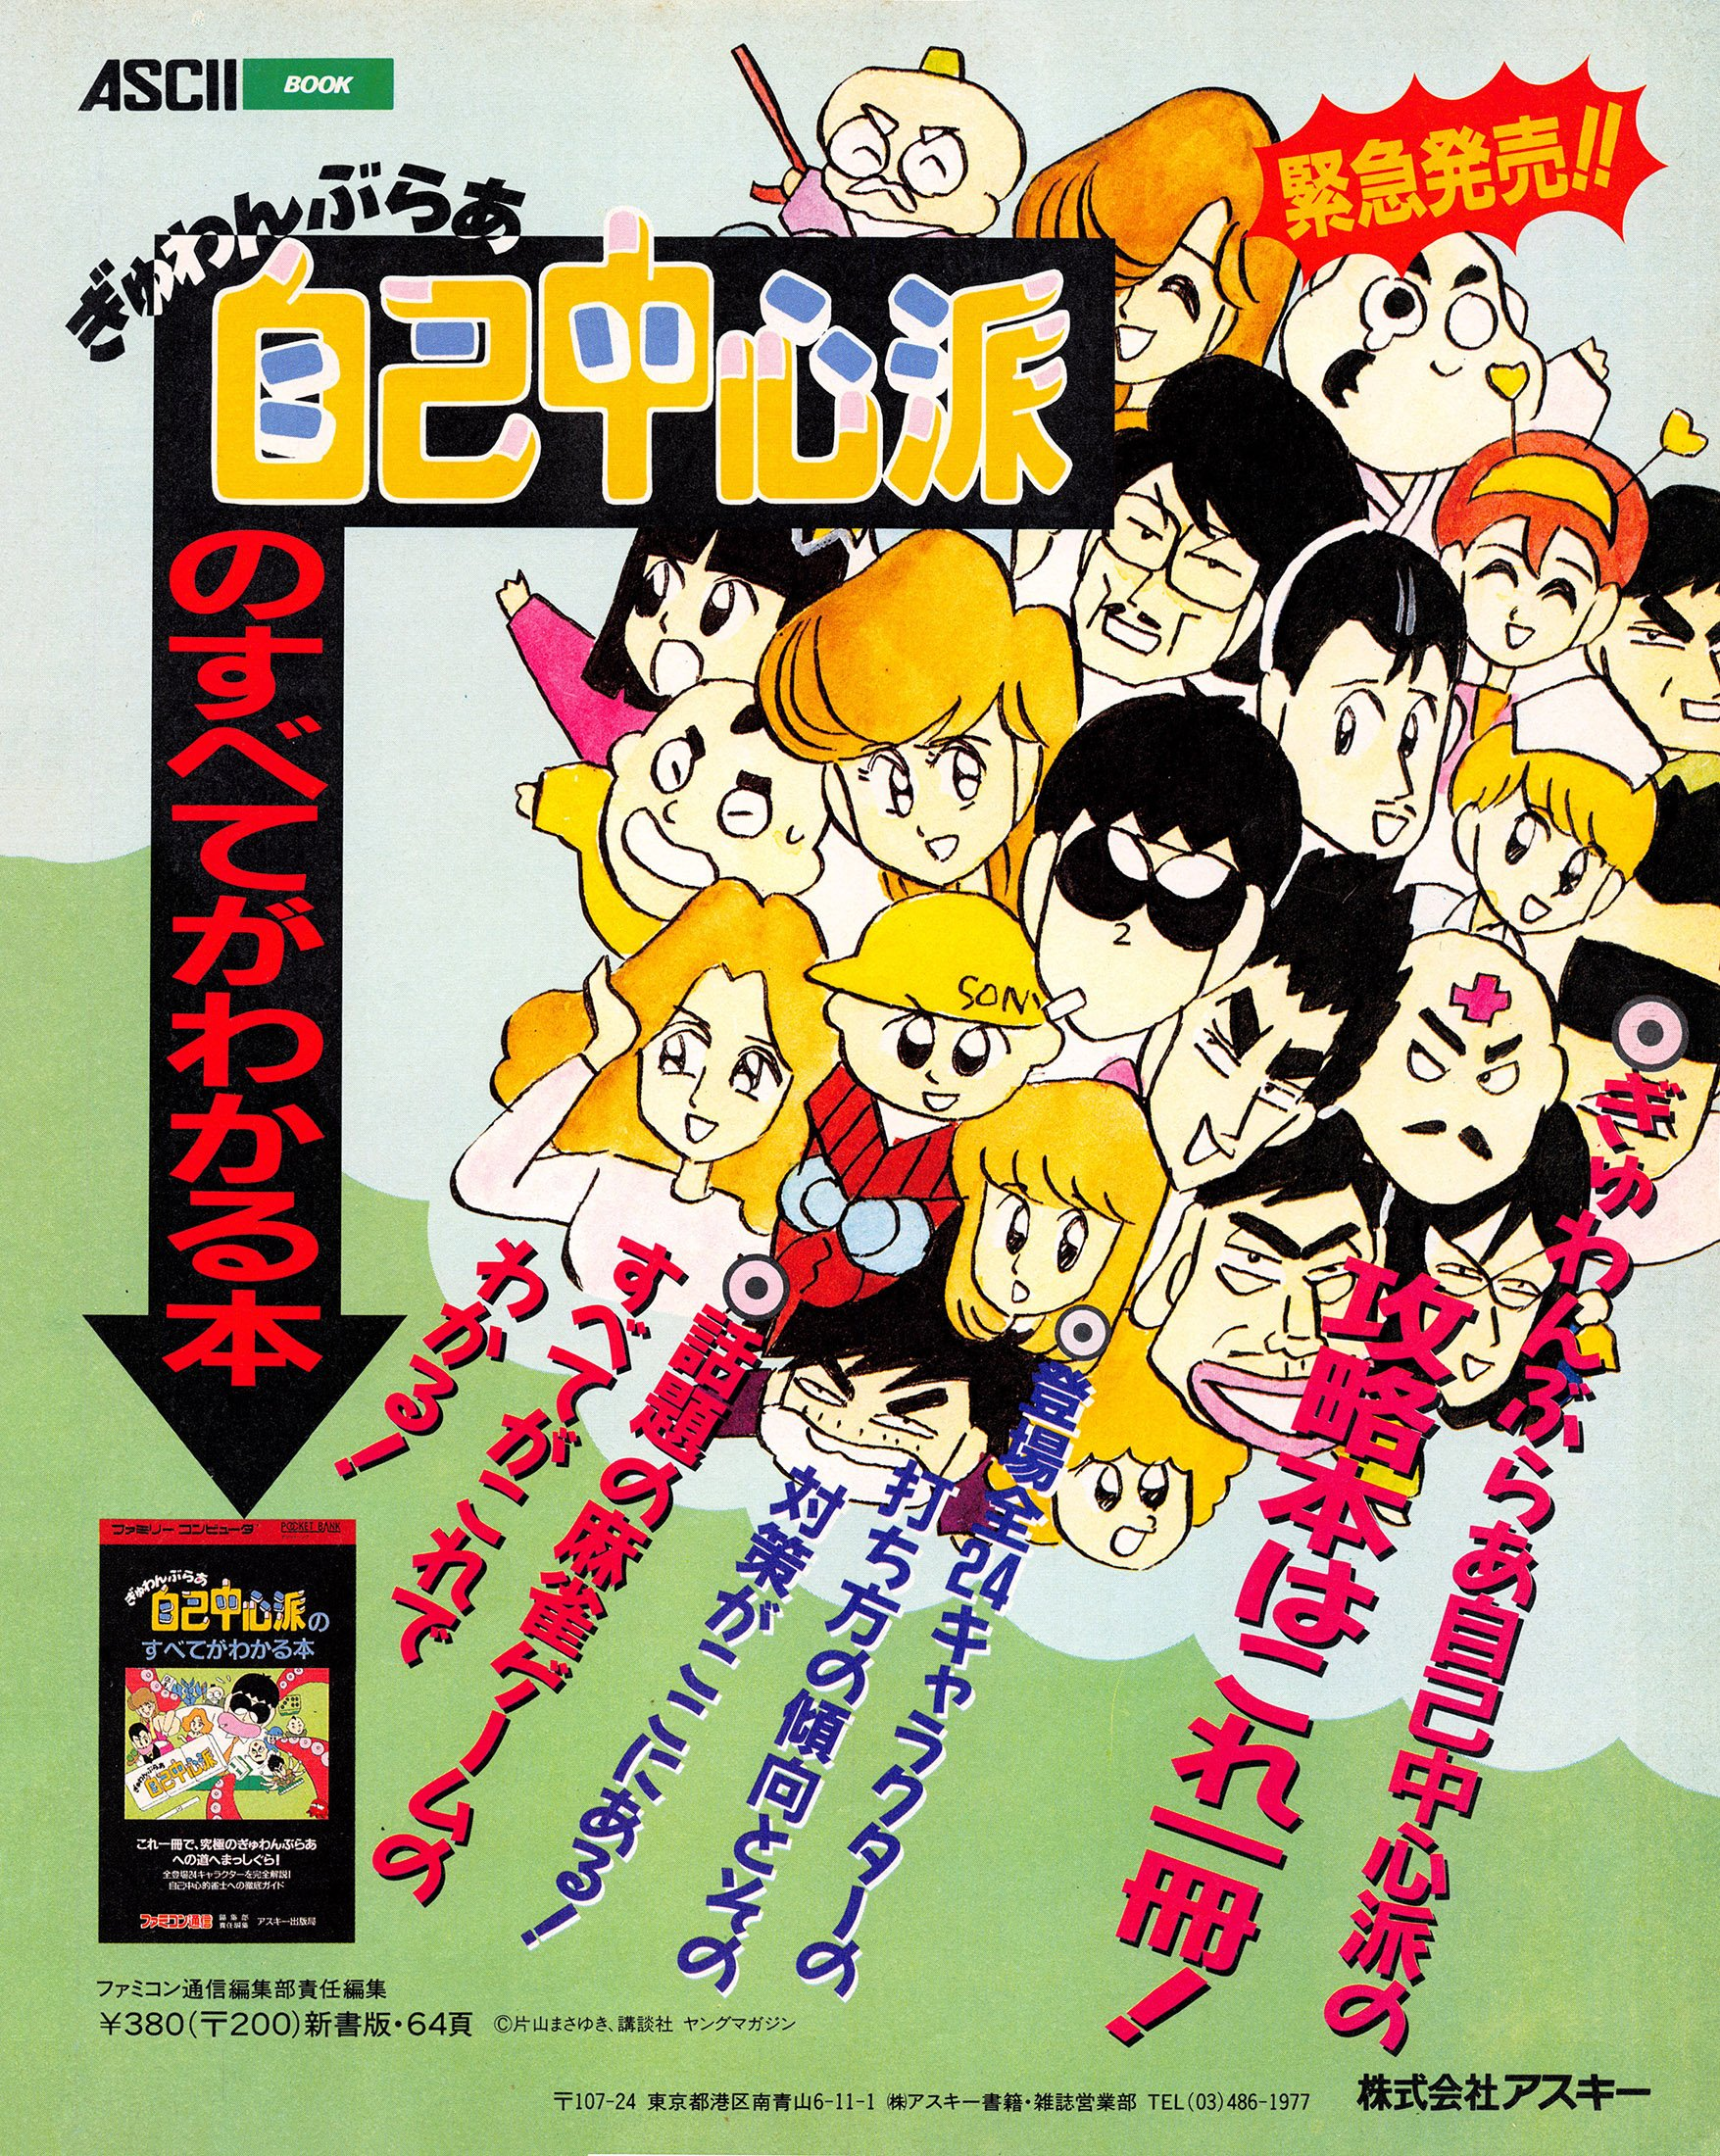 Gyuwanburā Jiko Chūshinha strategy guide (Japan)